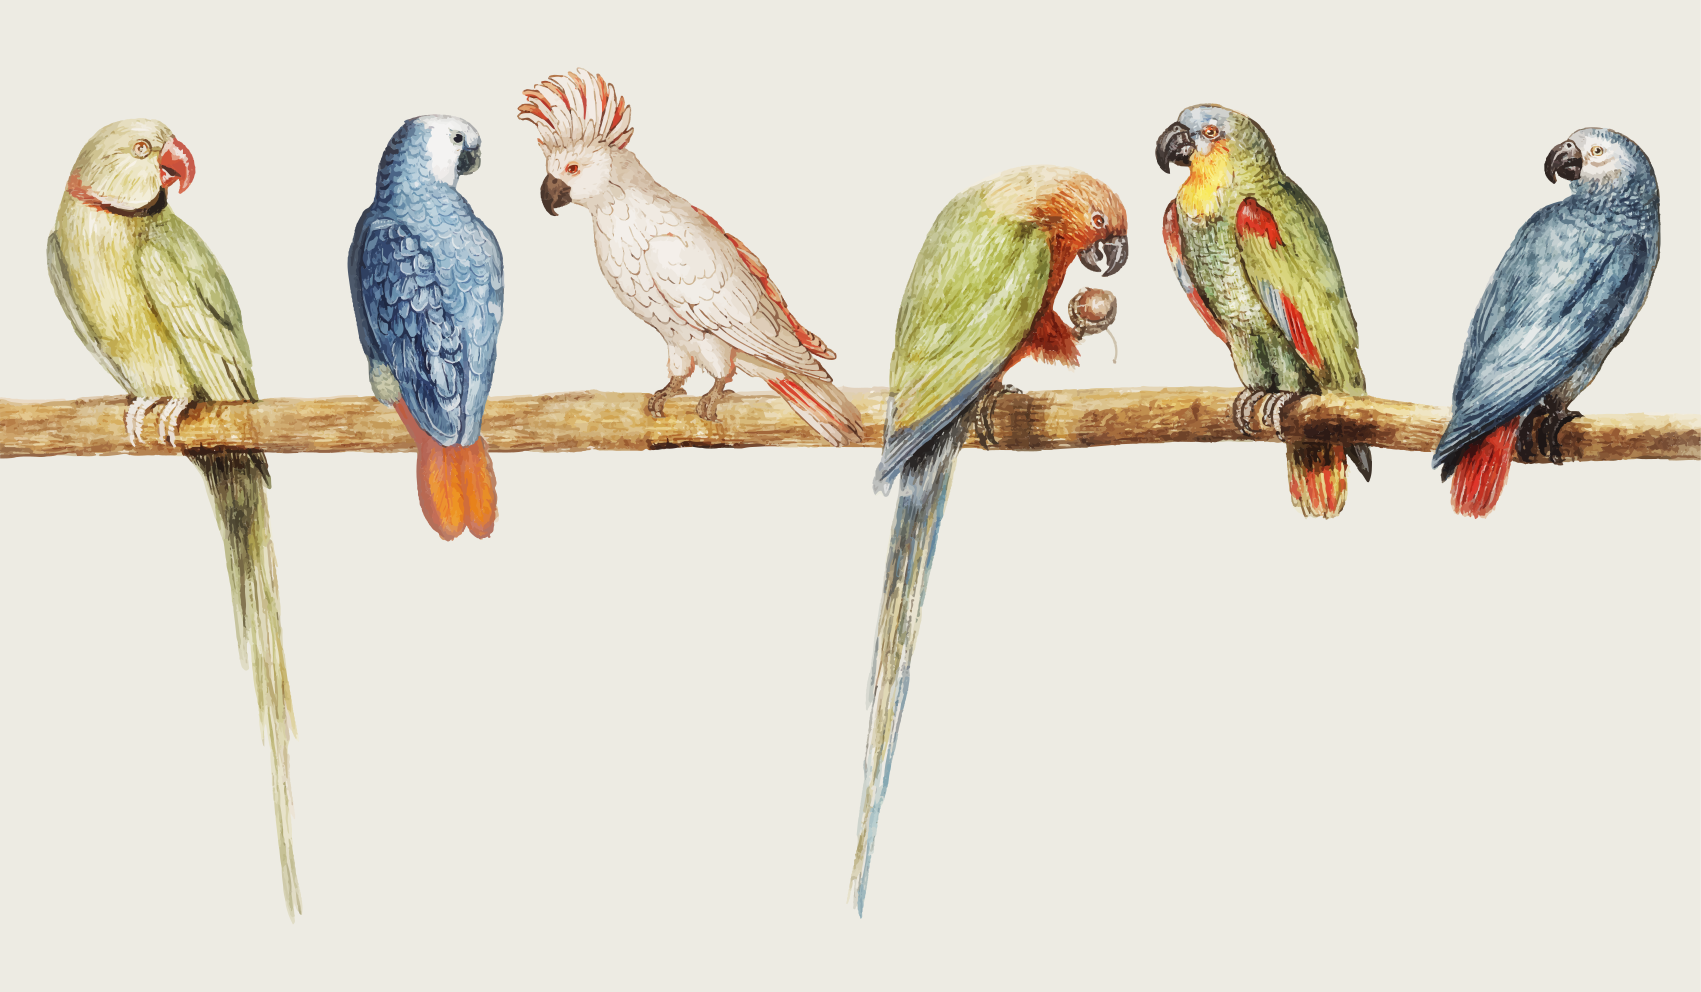 TenStickers. Modern gray with birds and branches flower rug. Vinyl rug with parrots. It presents different colorful parrots sitting on a branch. It is made of high quality vinyl and you can choose any size.